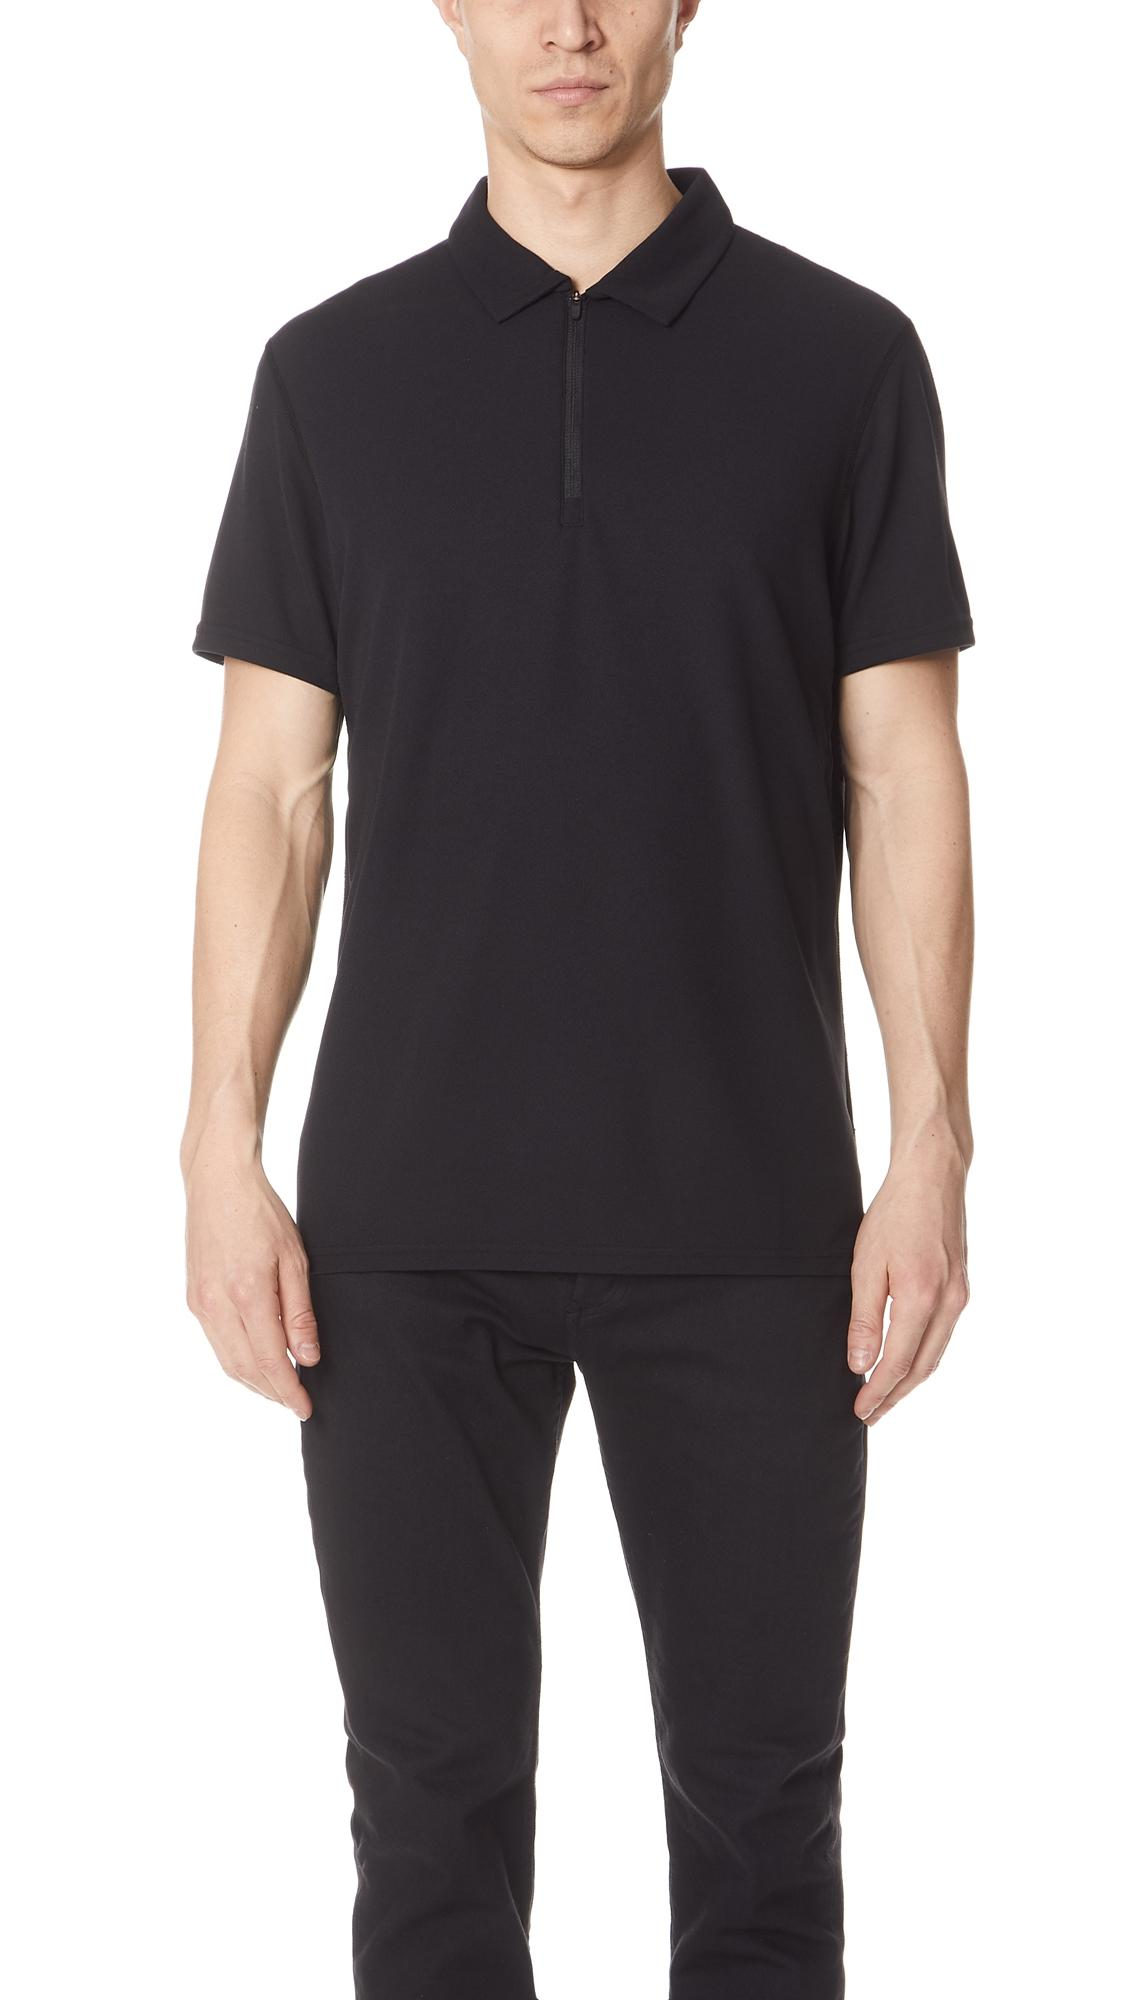 262b6081d Reigning Champ Coolmax Pique Polo Shirt In Black